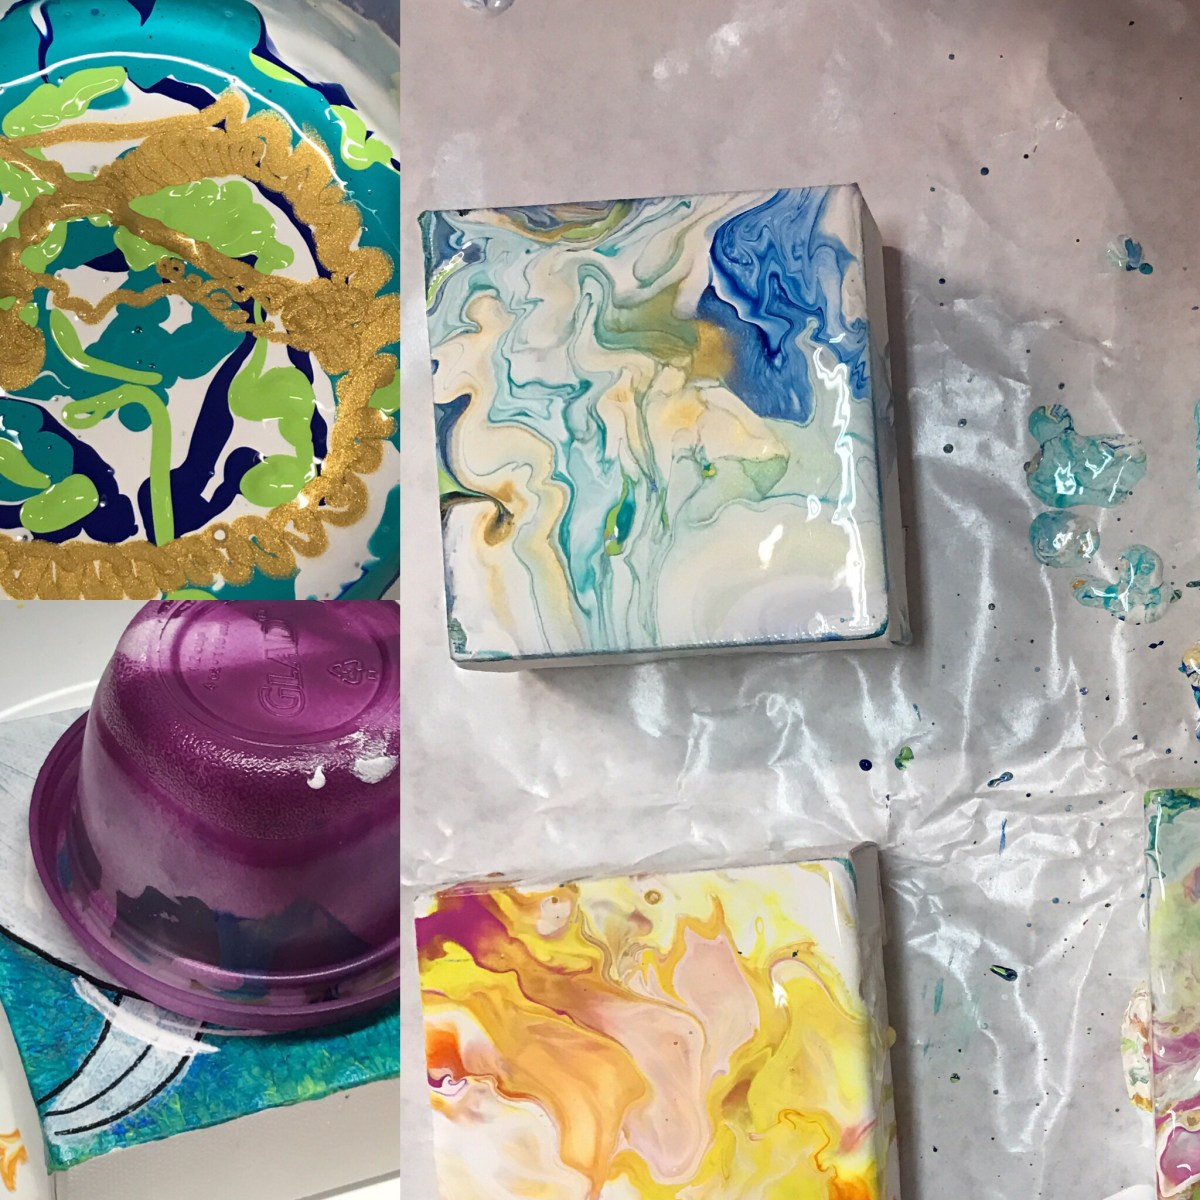 ©Lori Edwards , mini acrylic flow paintings in process Corpus Christi, TX